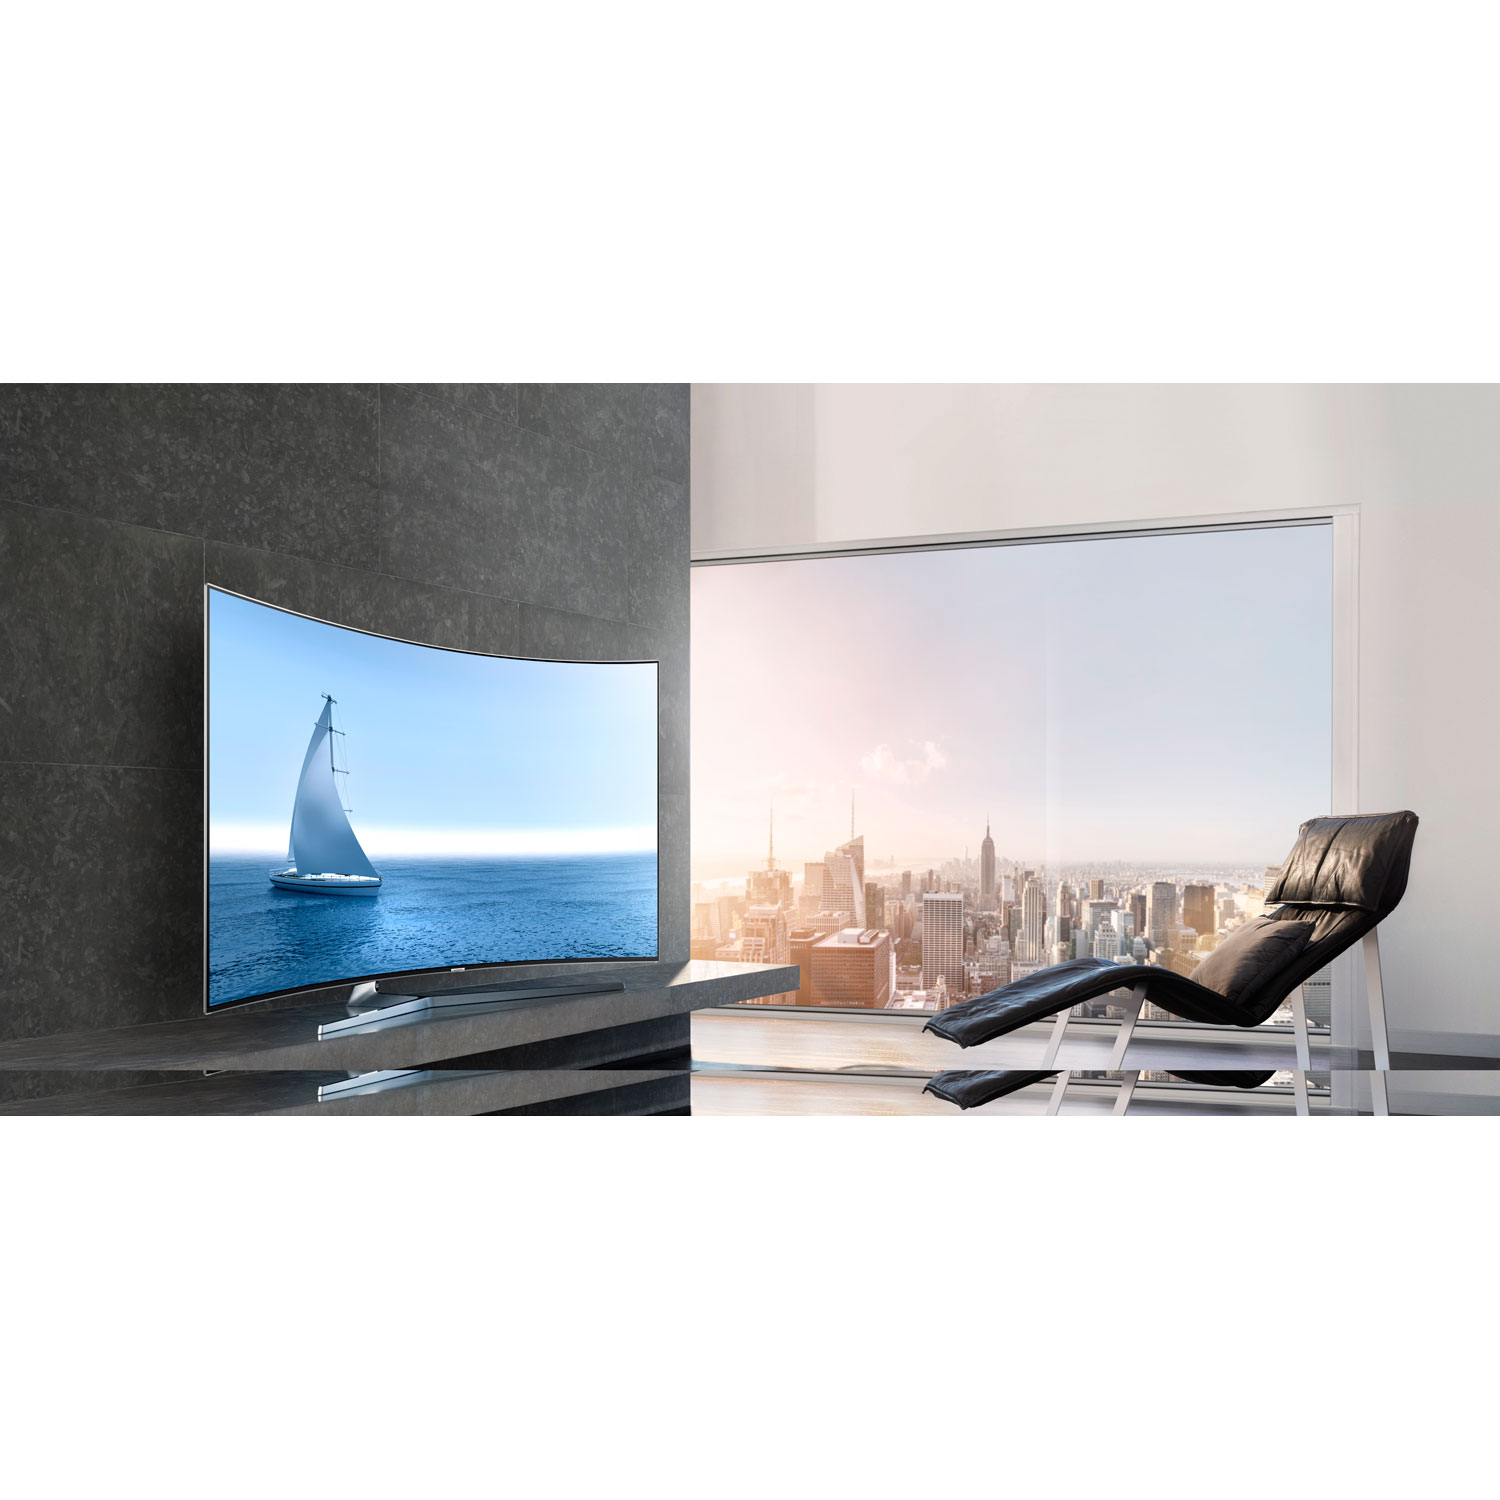 samsung un65ks9500 curved 65 inch 2160p smart 4k suhd led tv ks9500 9 series ebay. Black Bedroom Furniture Sets. Home Design Ideas